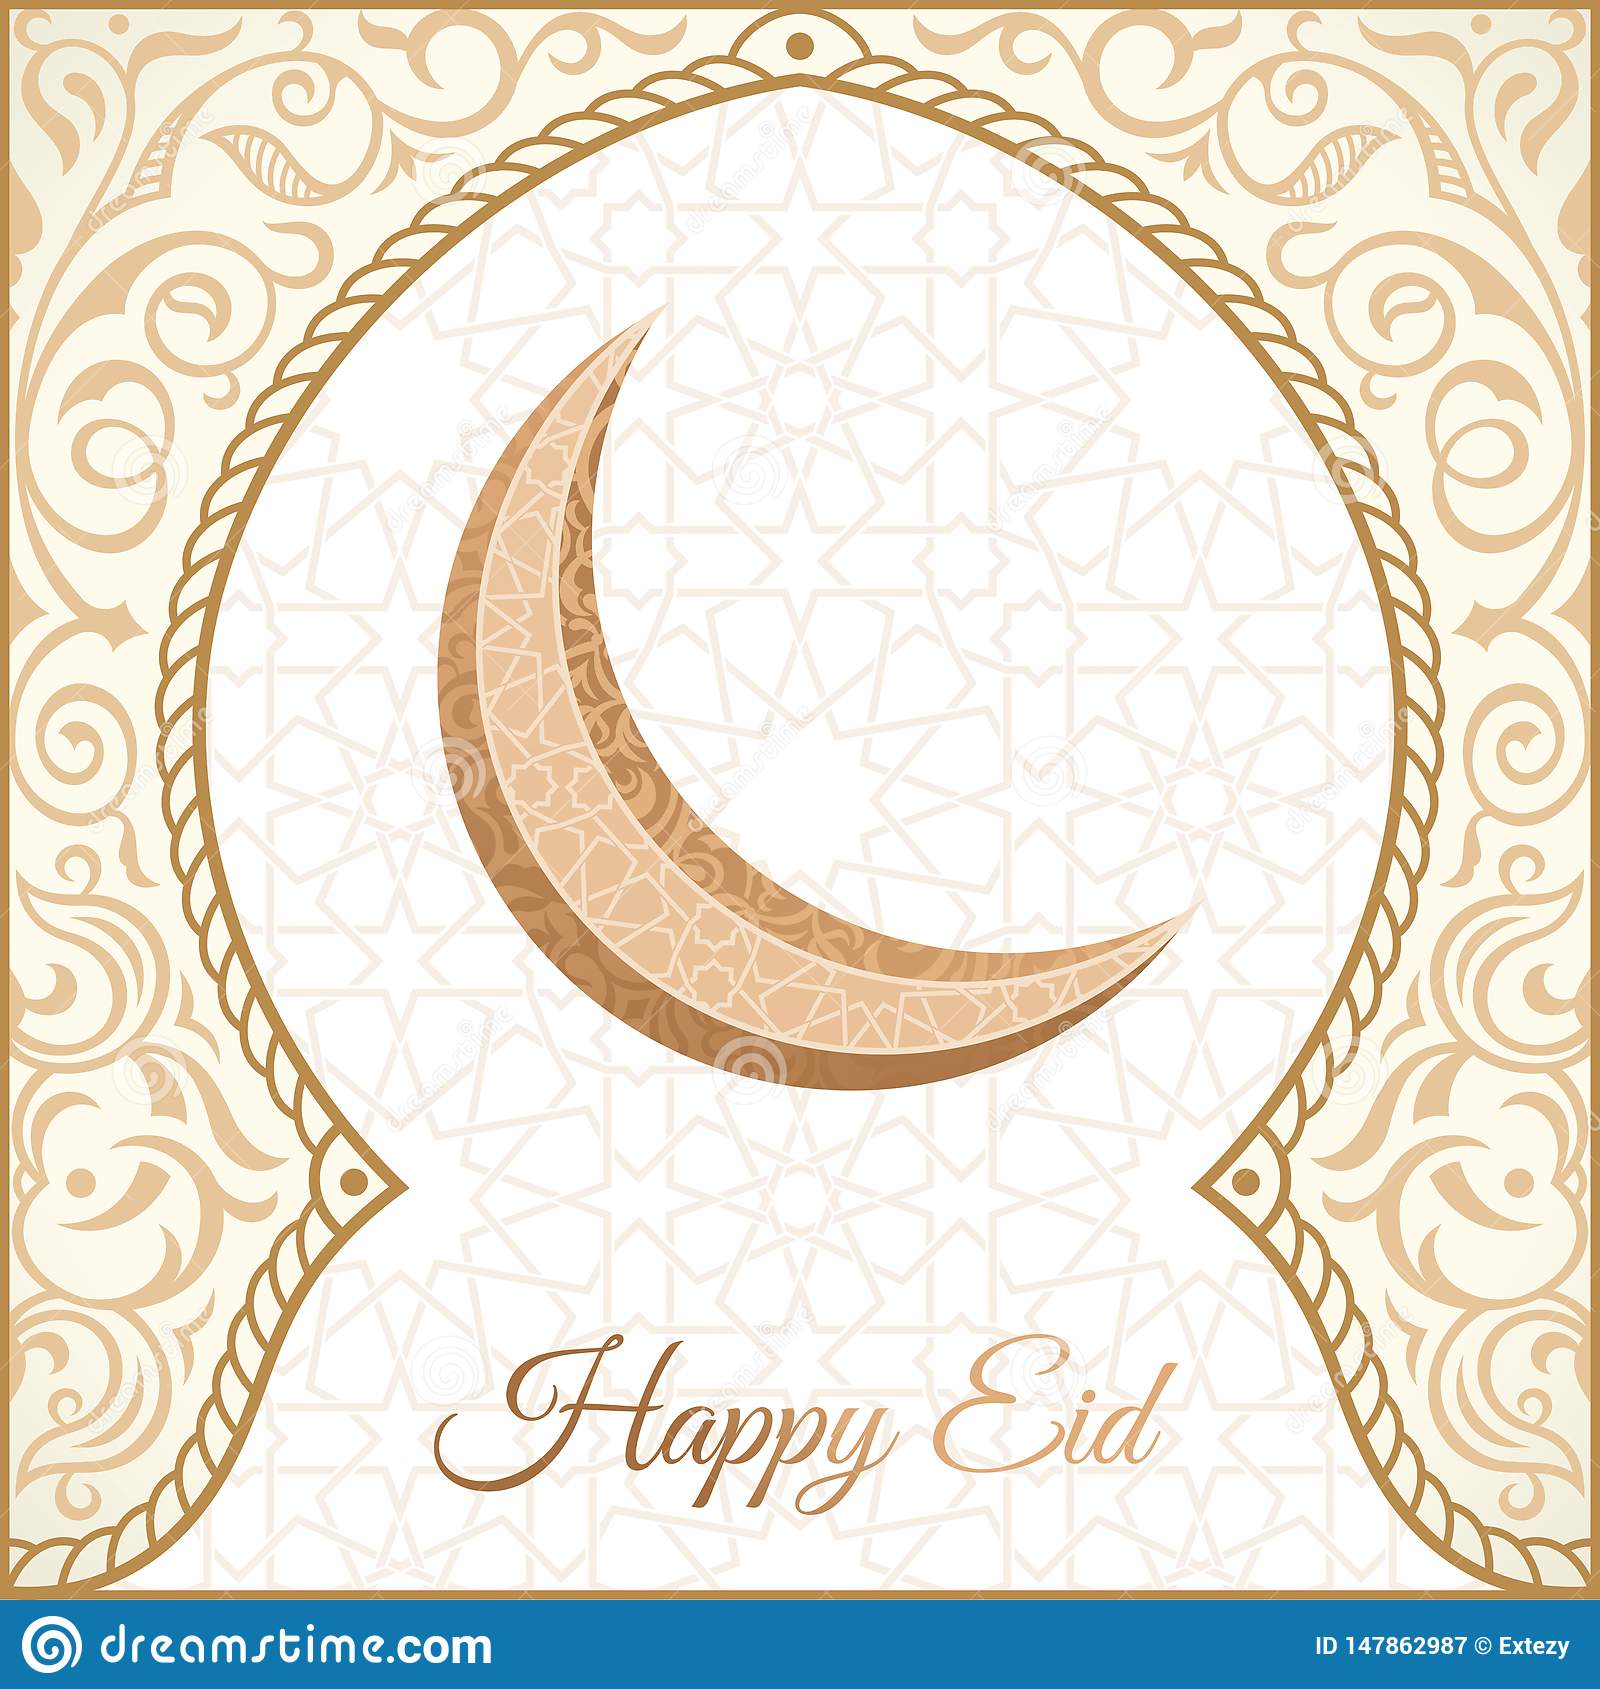 Happy Eid Mubarak Greeting Design Happy Holiday Words With Golden Mosque And Floral Background Stock Vector Illustration Of Festival Islamic 147862987